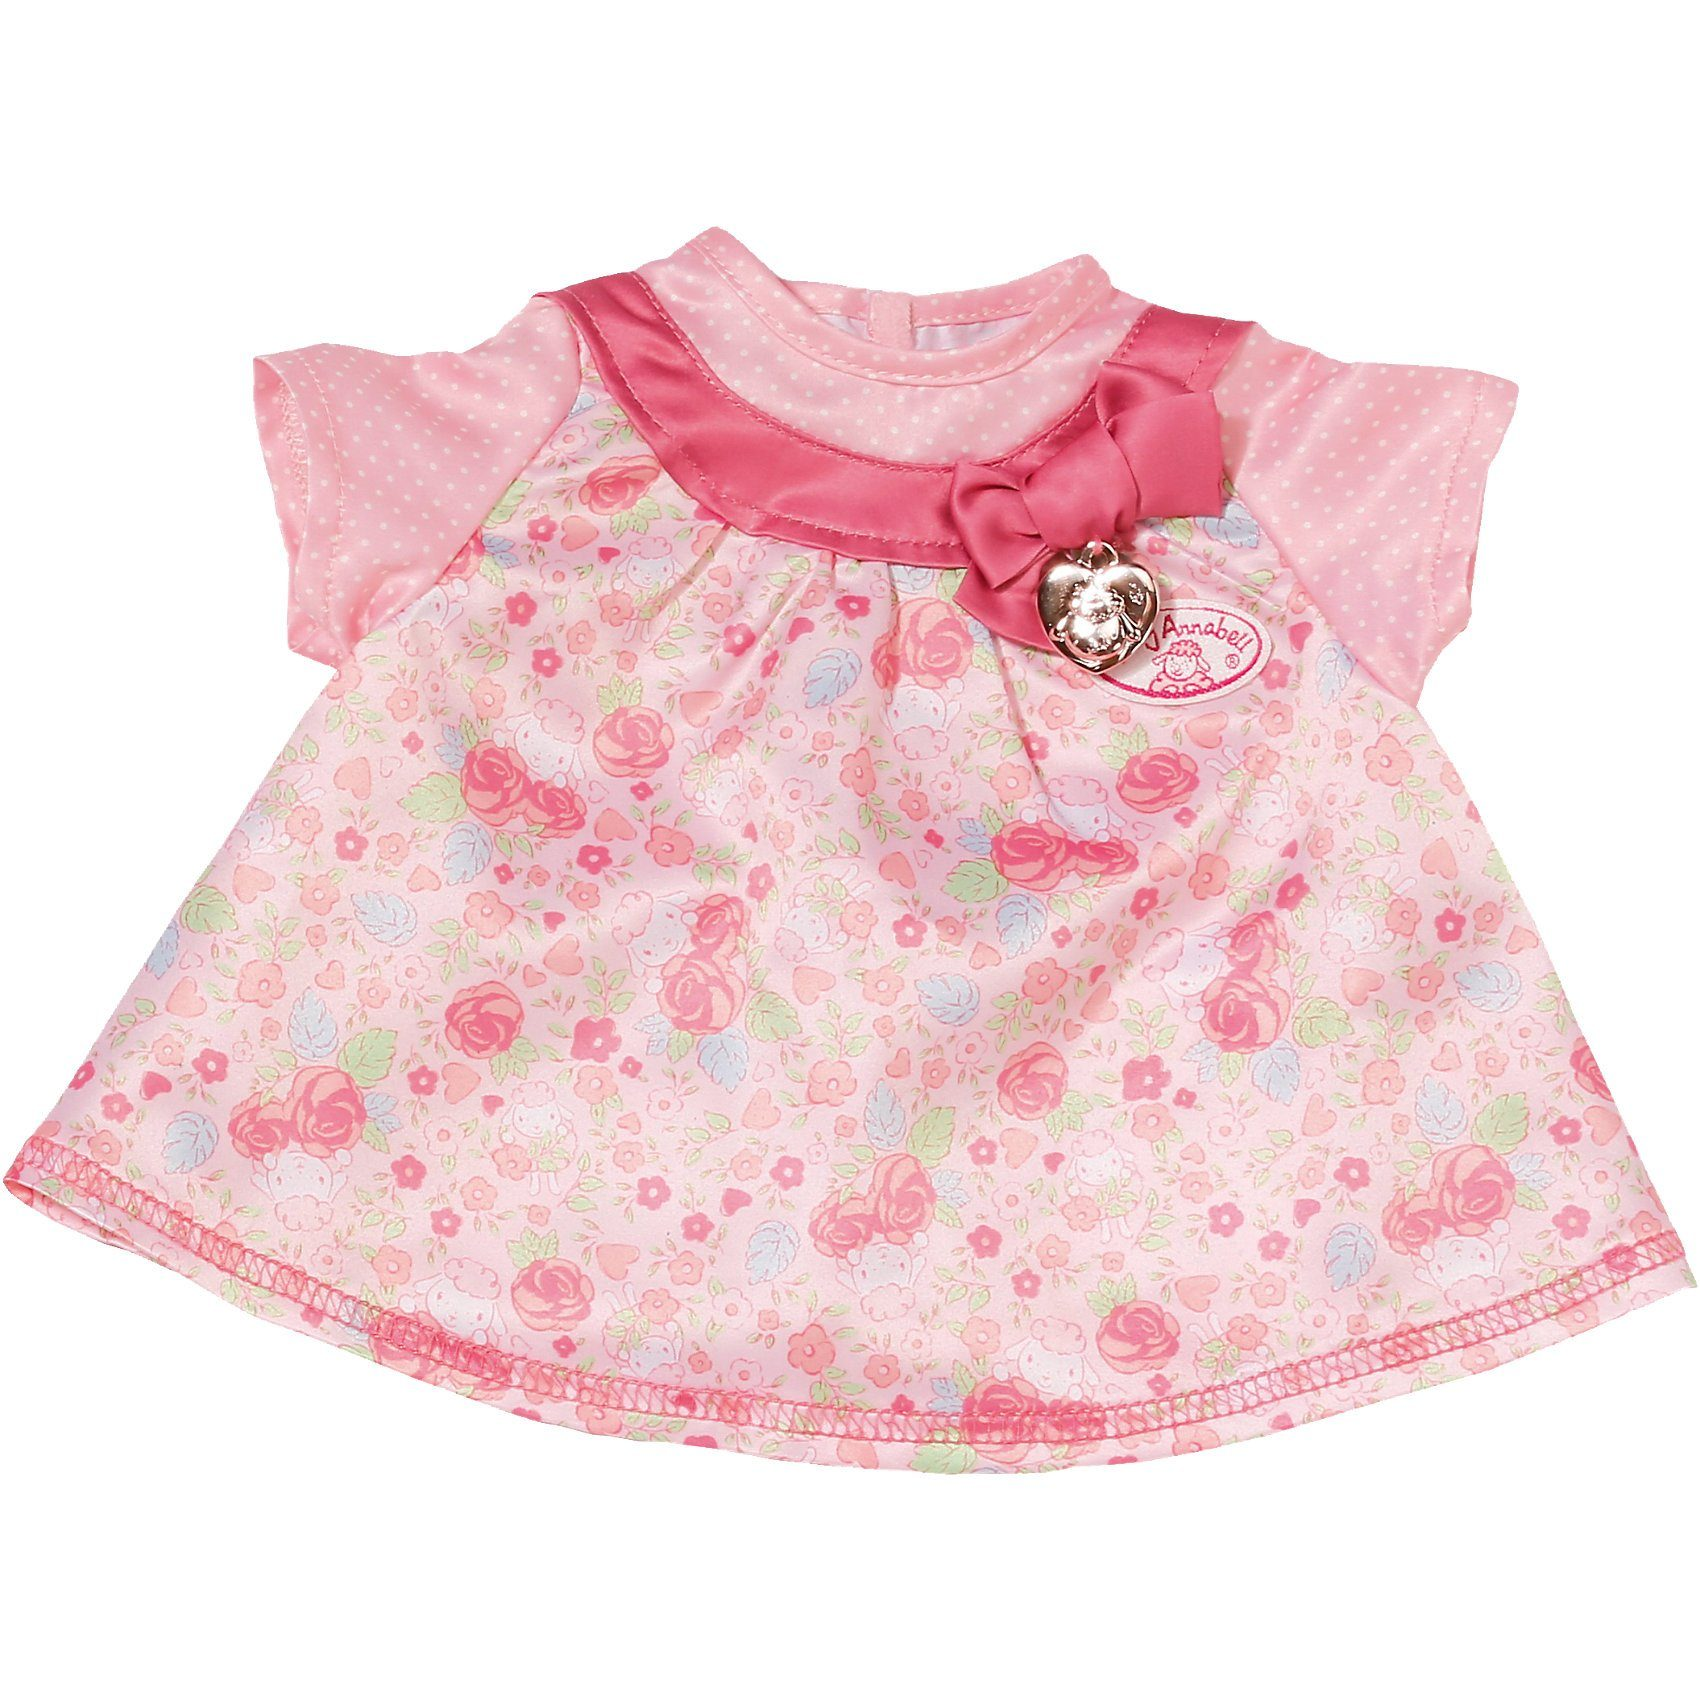 Zapf Creation Baby Annabell® Puppenkleidung rosa Kleid, 46 cm